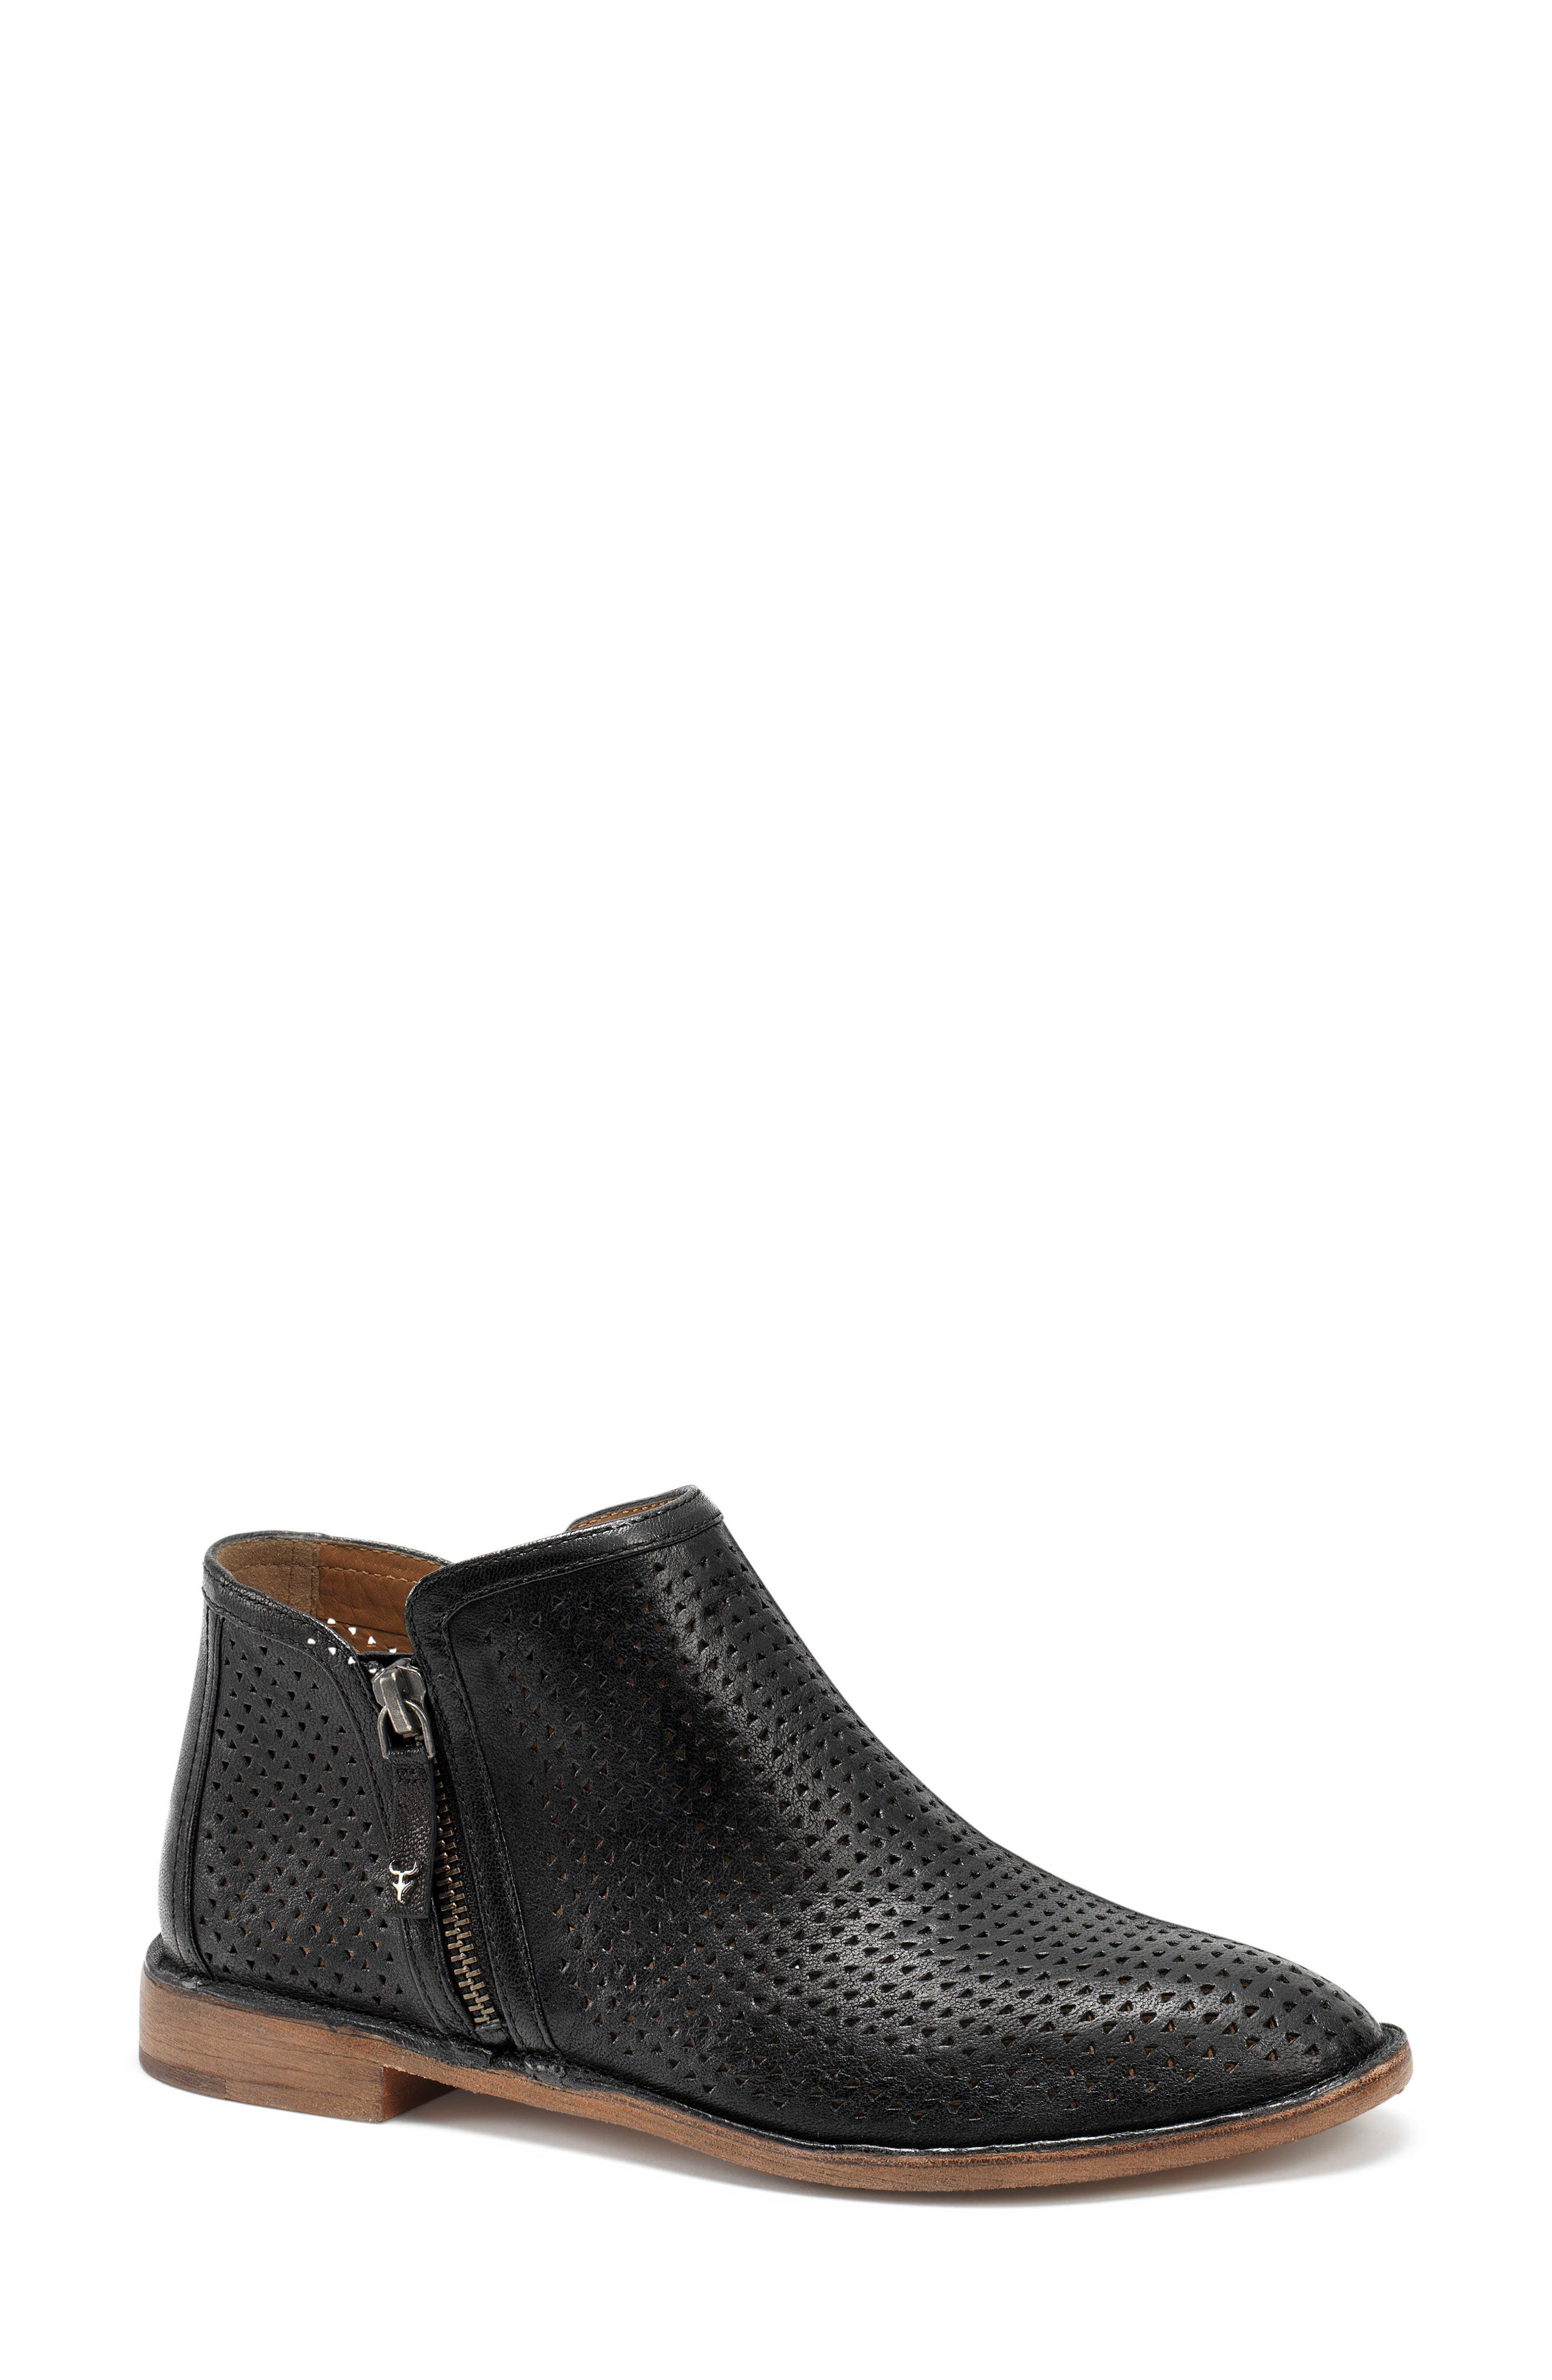 Addison Low Perforated Bootie,                         Main,                         color, BLACK LEATHER